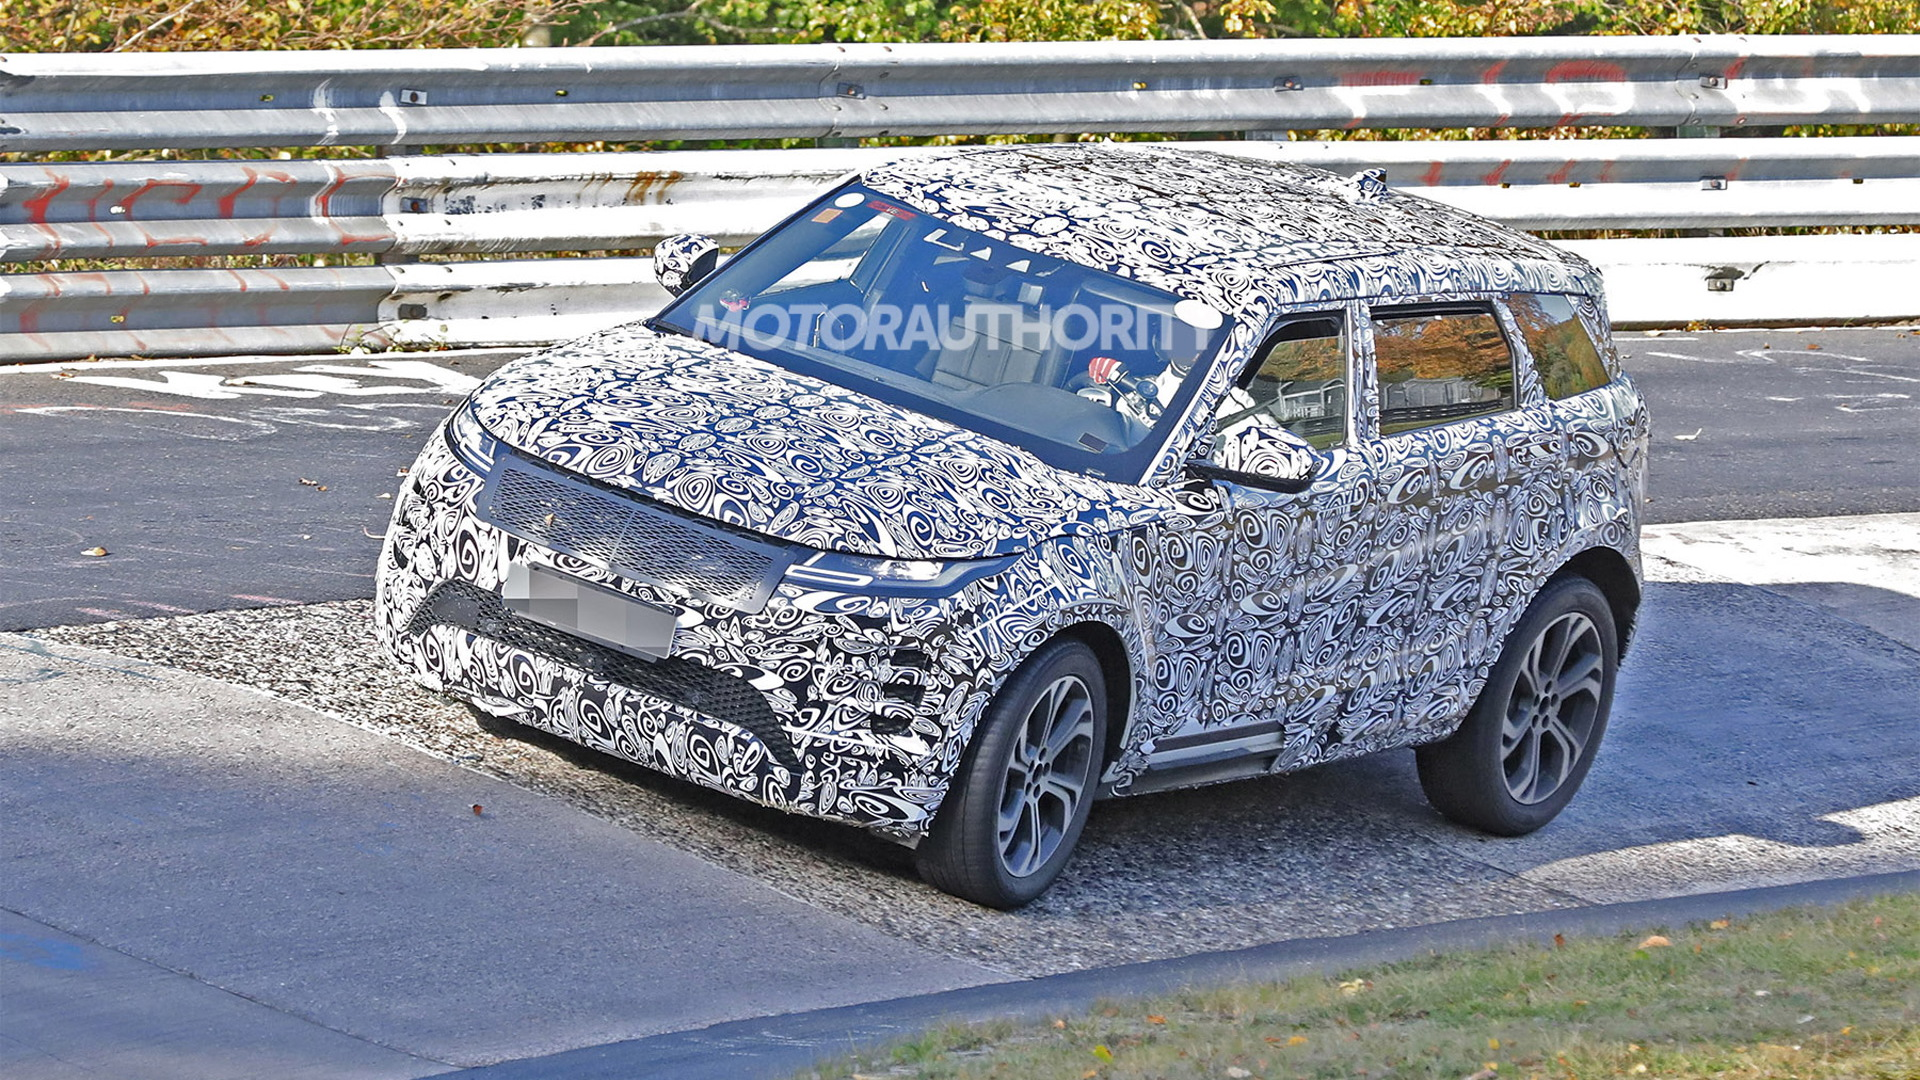 2021 Land Rover Range Rover Evoque Long Wheelbase spy shots - Photo credit: S. Baldauf/SB-Medien